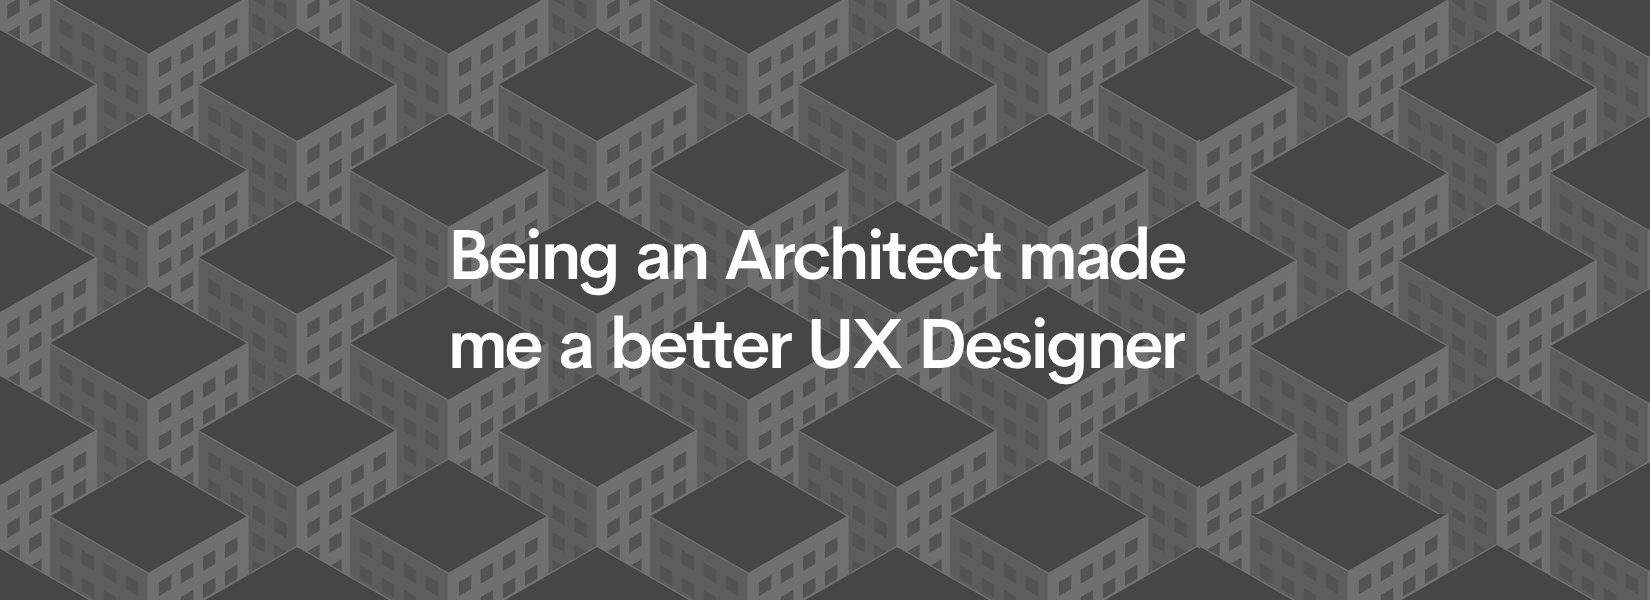 Being an Architect made me a better UX Designer